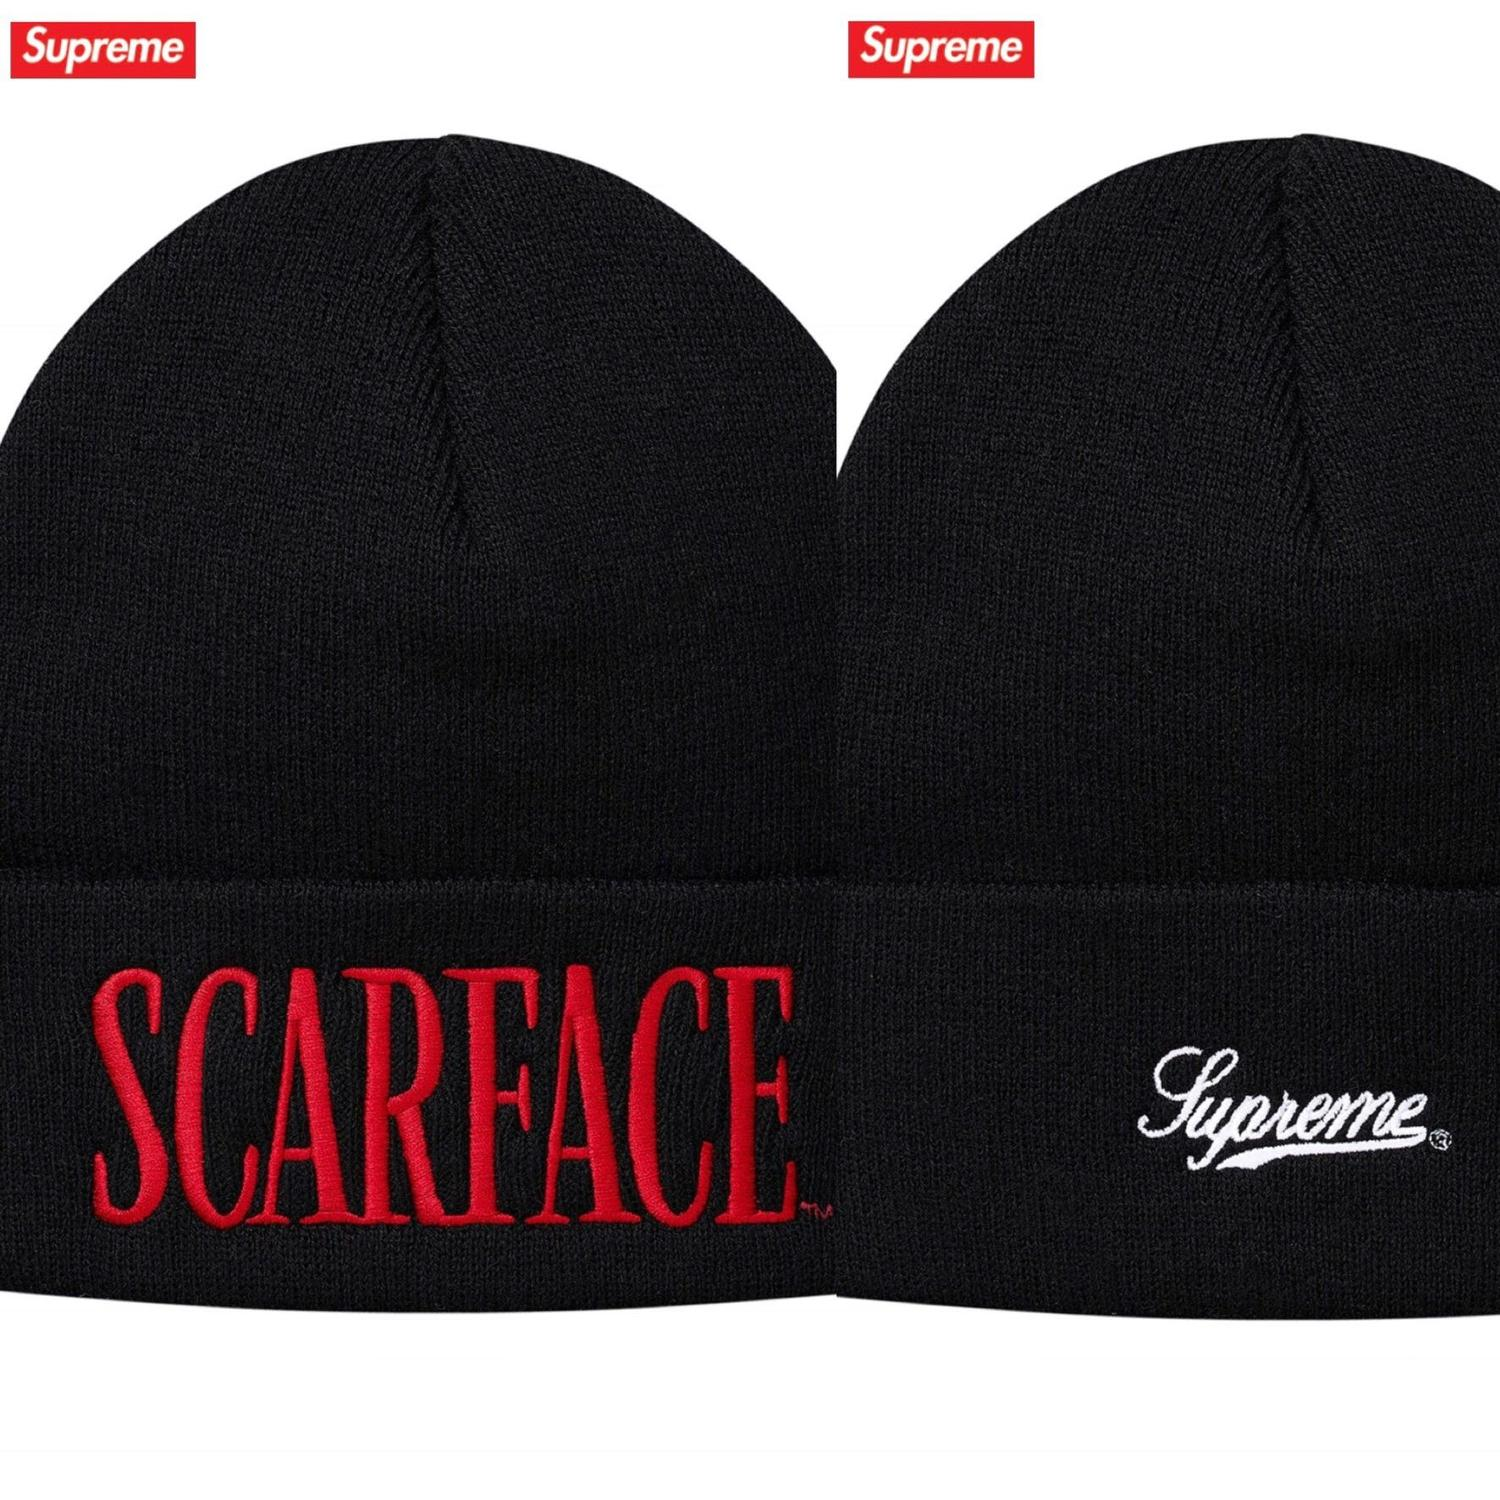 7f29594a81ffd Best Supreme Fw17 - Scarface Beanie (black) for sale in Brentwood ...